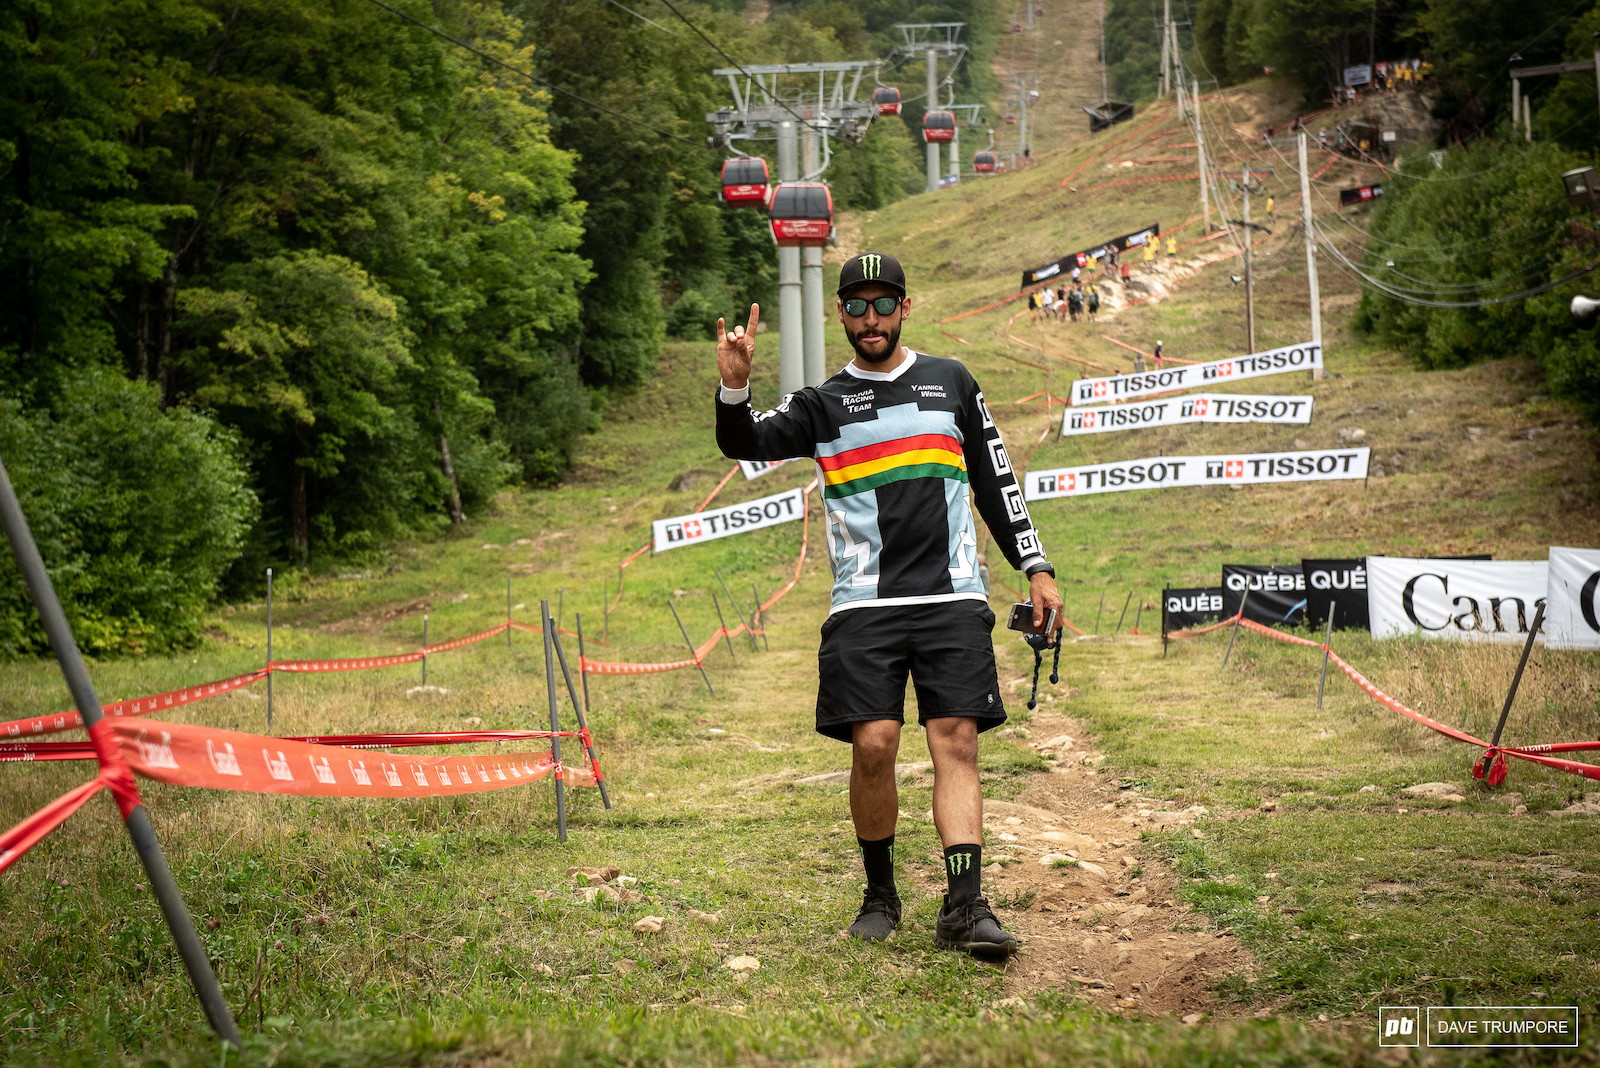 Yannick Wende s bike went missing last week for Master s Word Champs so after a quick scramble he is now part of the Bolivian team for the real World Champs this week.